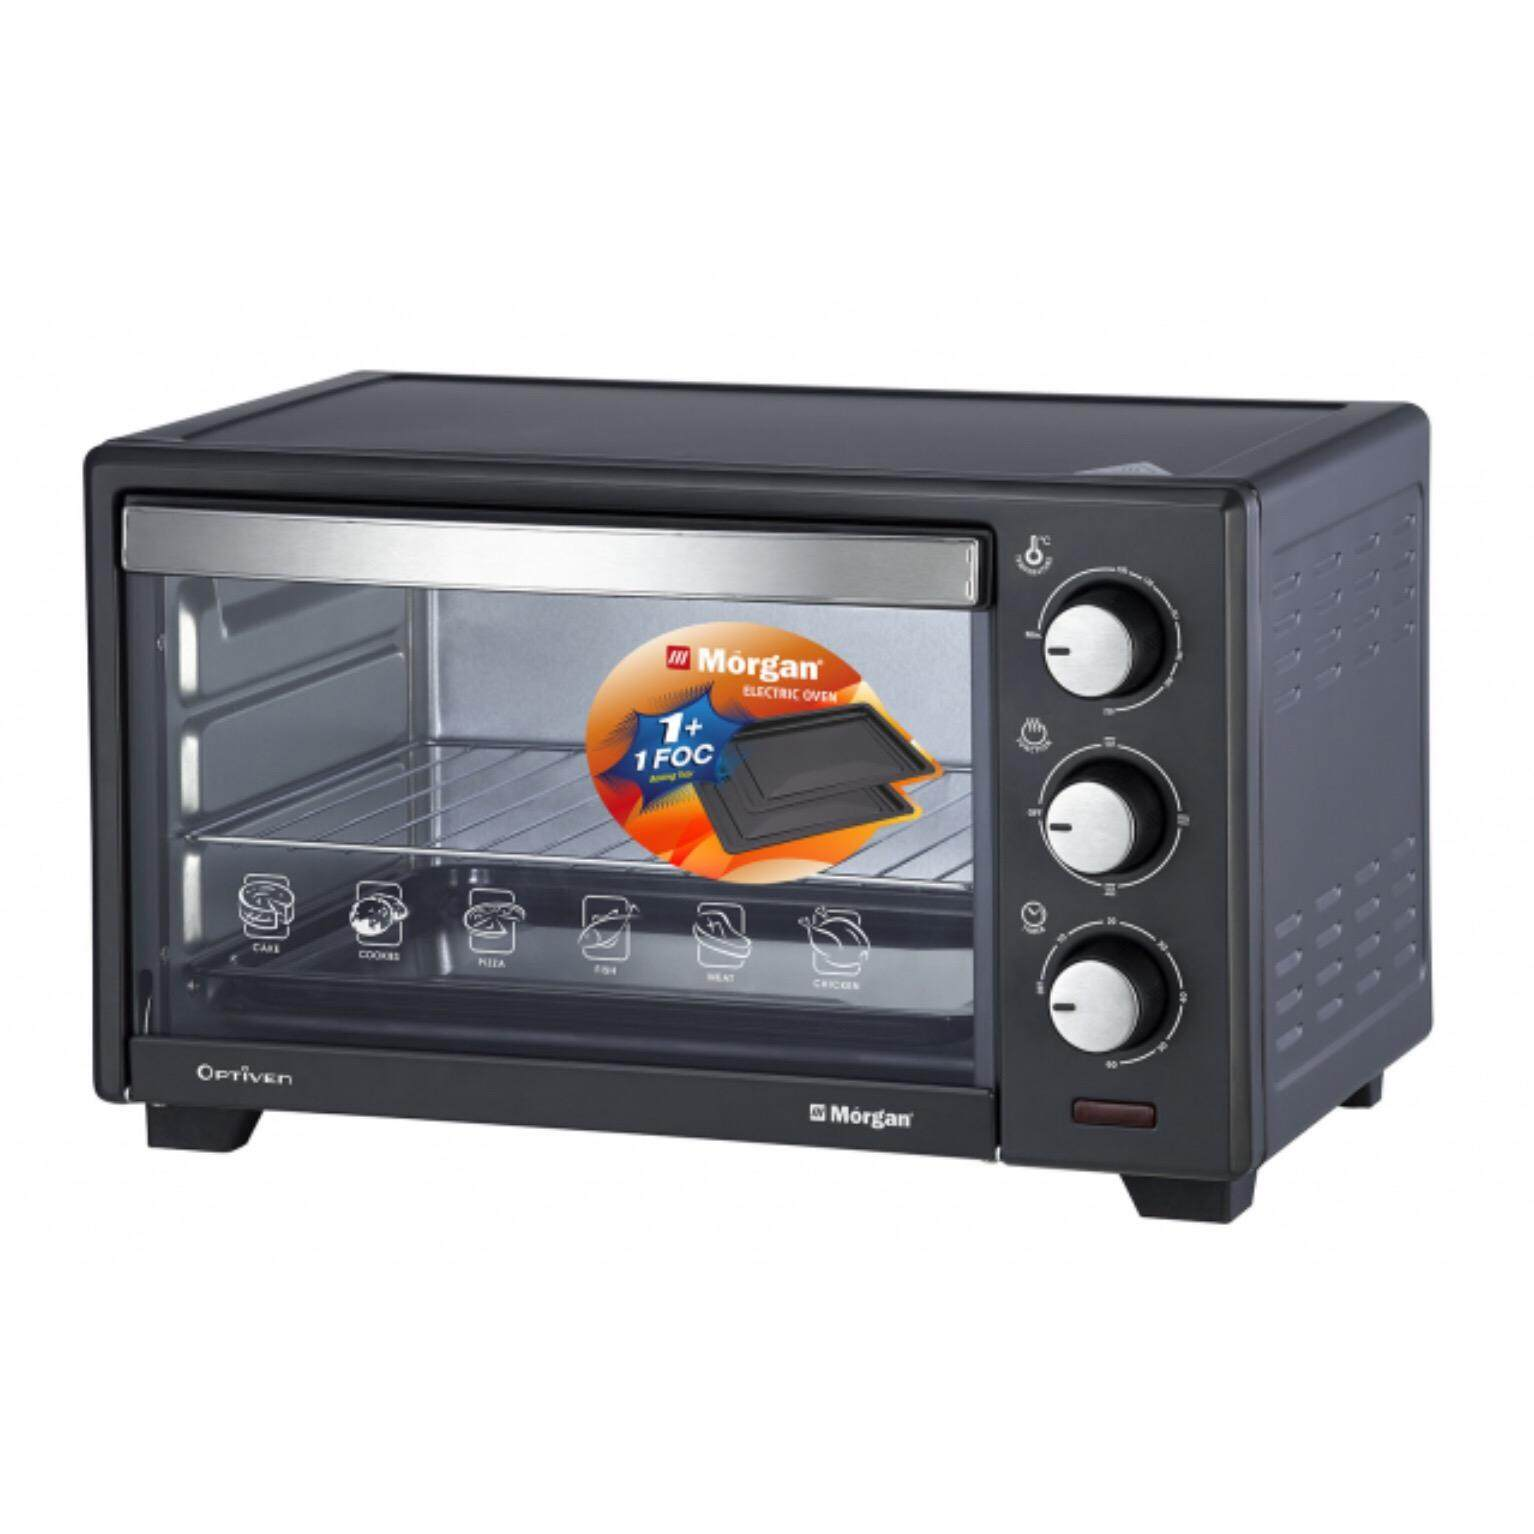 MORGAN 20L Electric Oven MEOHC22 (Black) + Free extra baking tray & cupcake bake tray